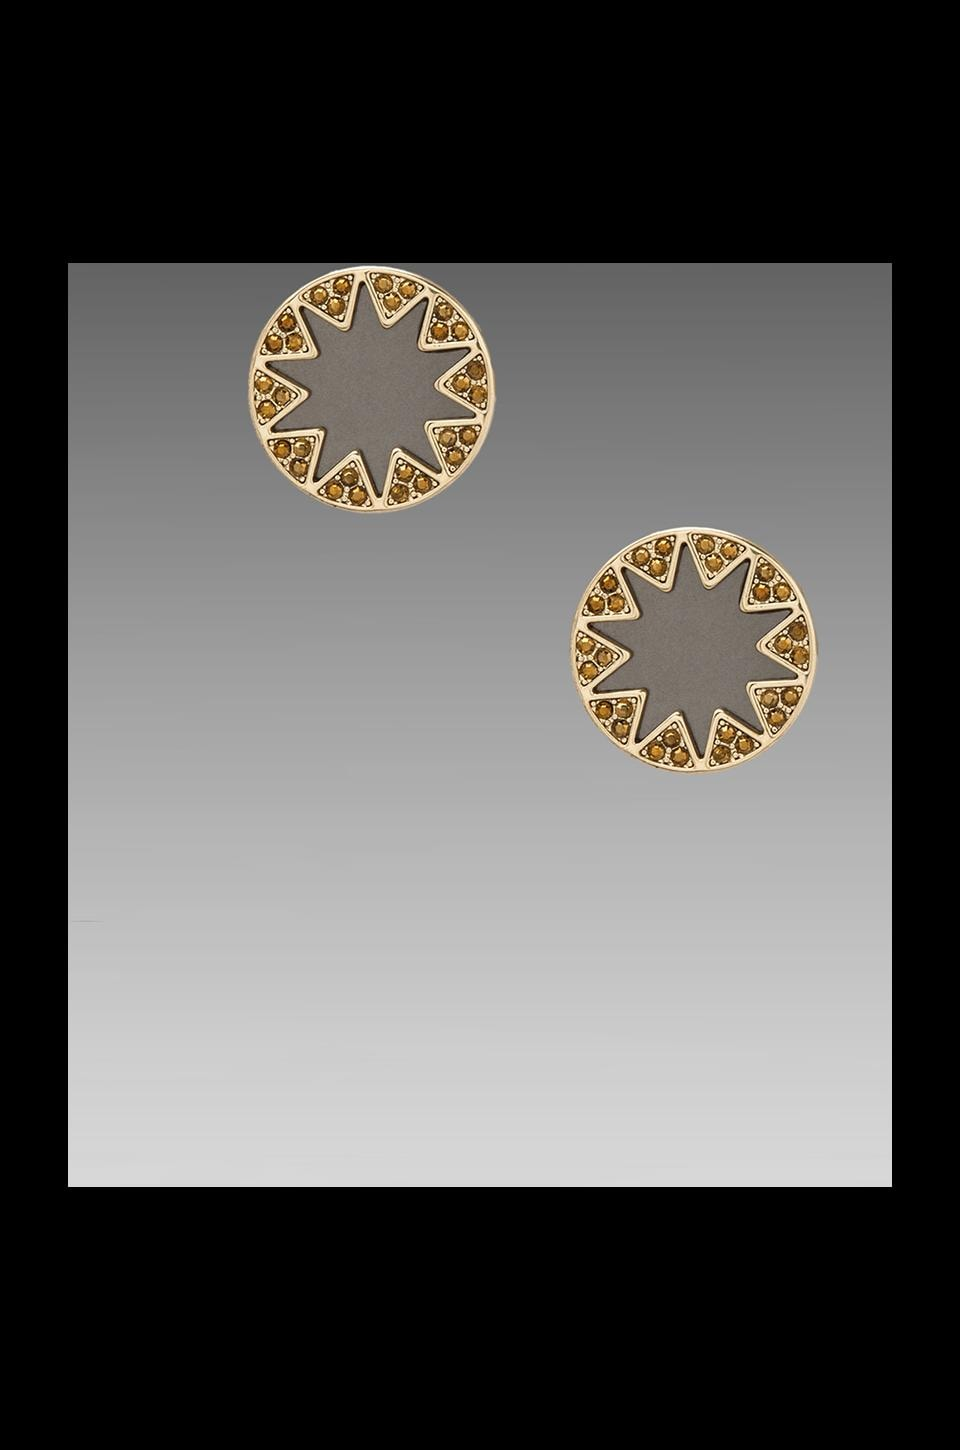 House of Harlow 1960 House of Harlow Earth Metal Sunburst Stud Earrings in Gold/Black